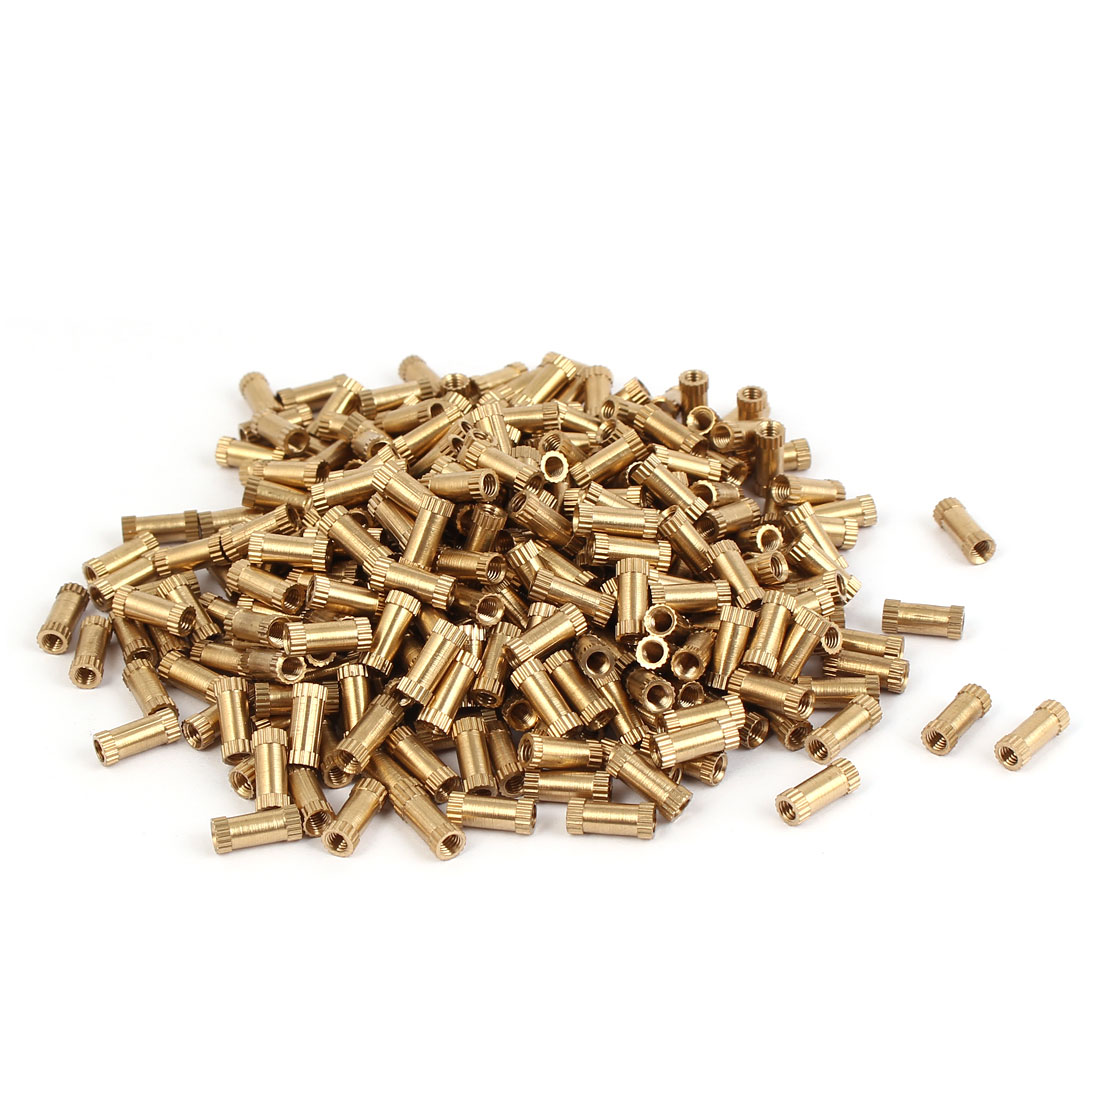 M3 x 10mm Brass Cylinder Injection Molding Knurled Threaded Insert Nuts 500PCS